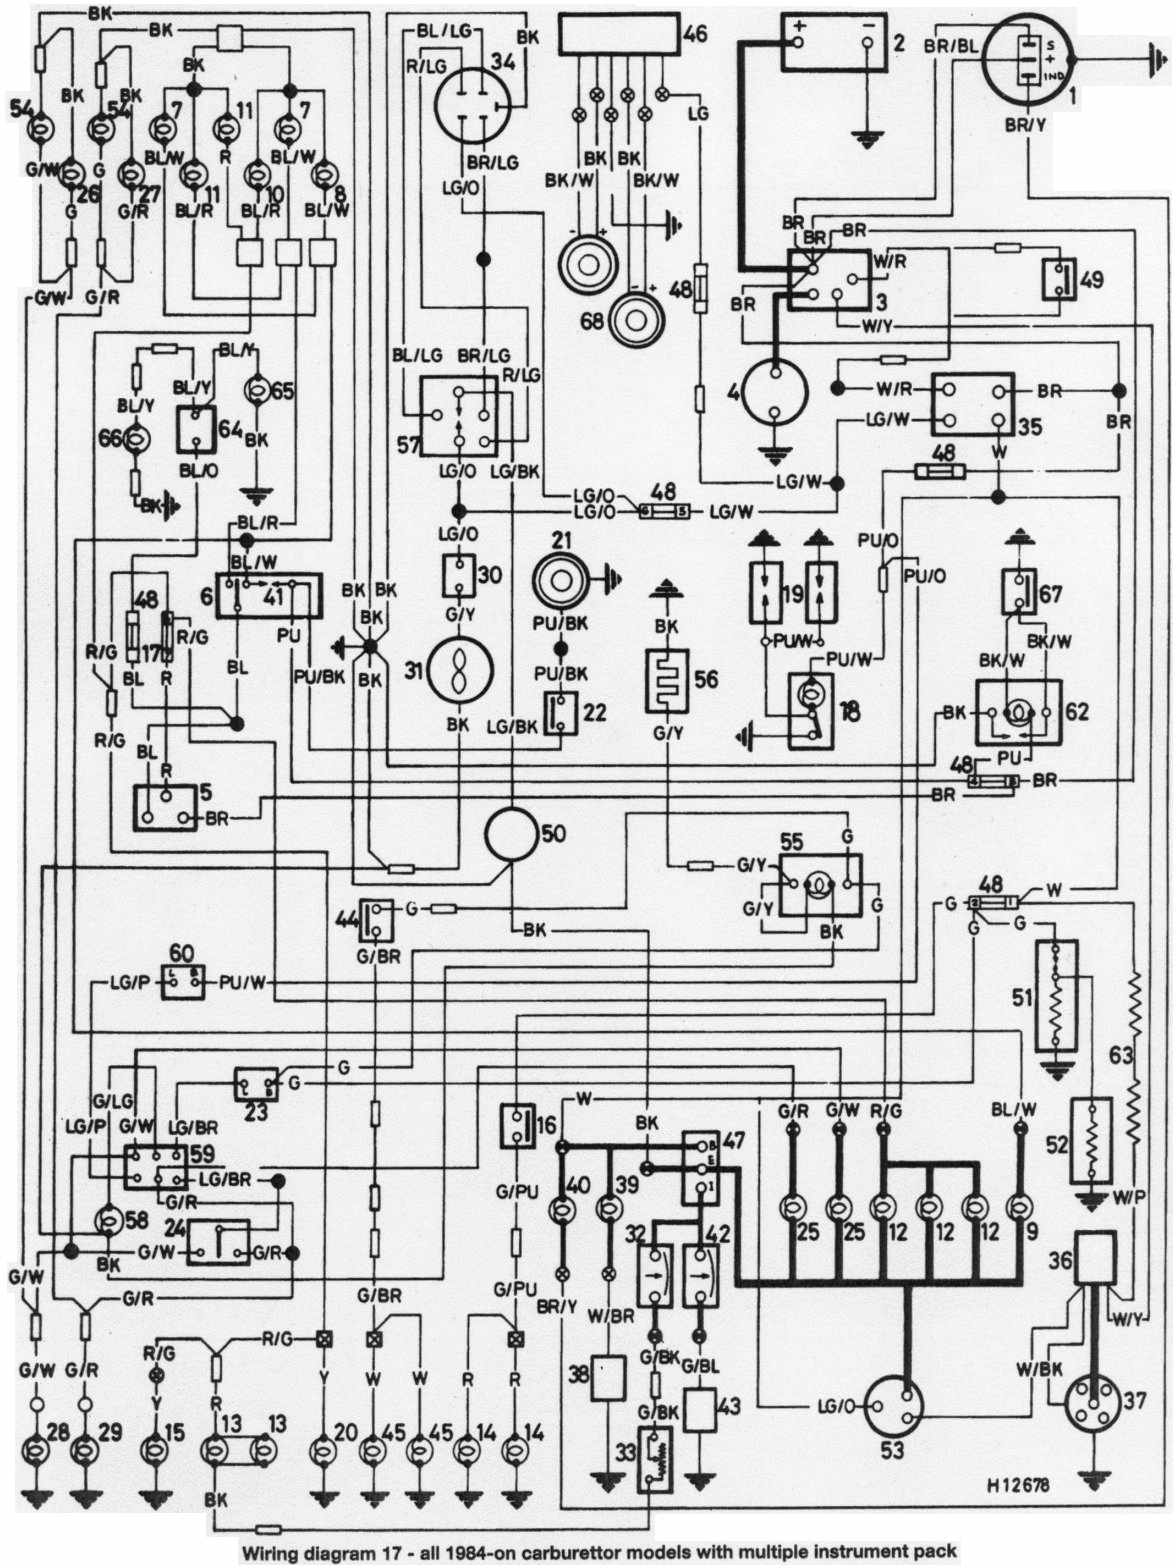 Remarkable I Need Physical Picture Wiring Diagram For 1995 Ford ...